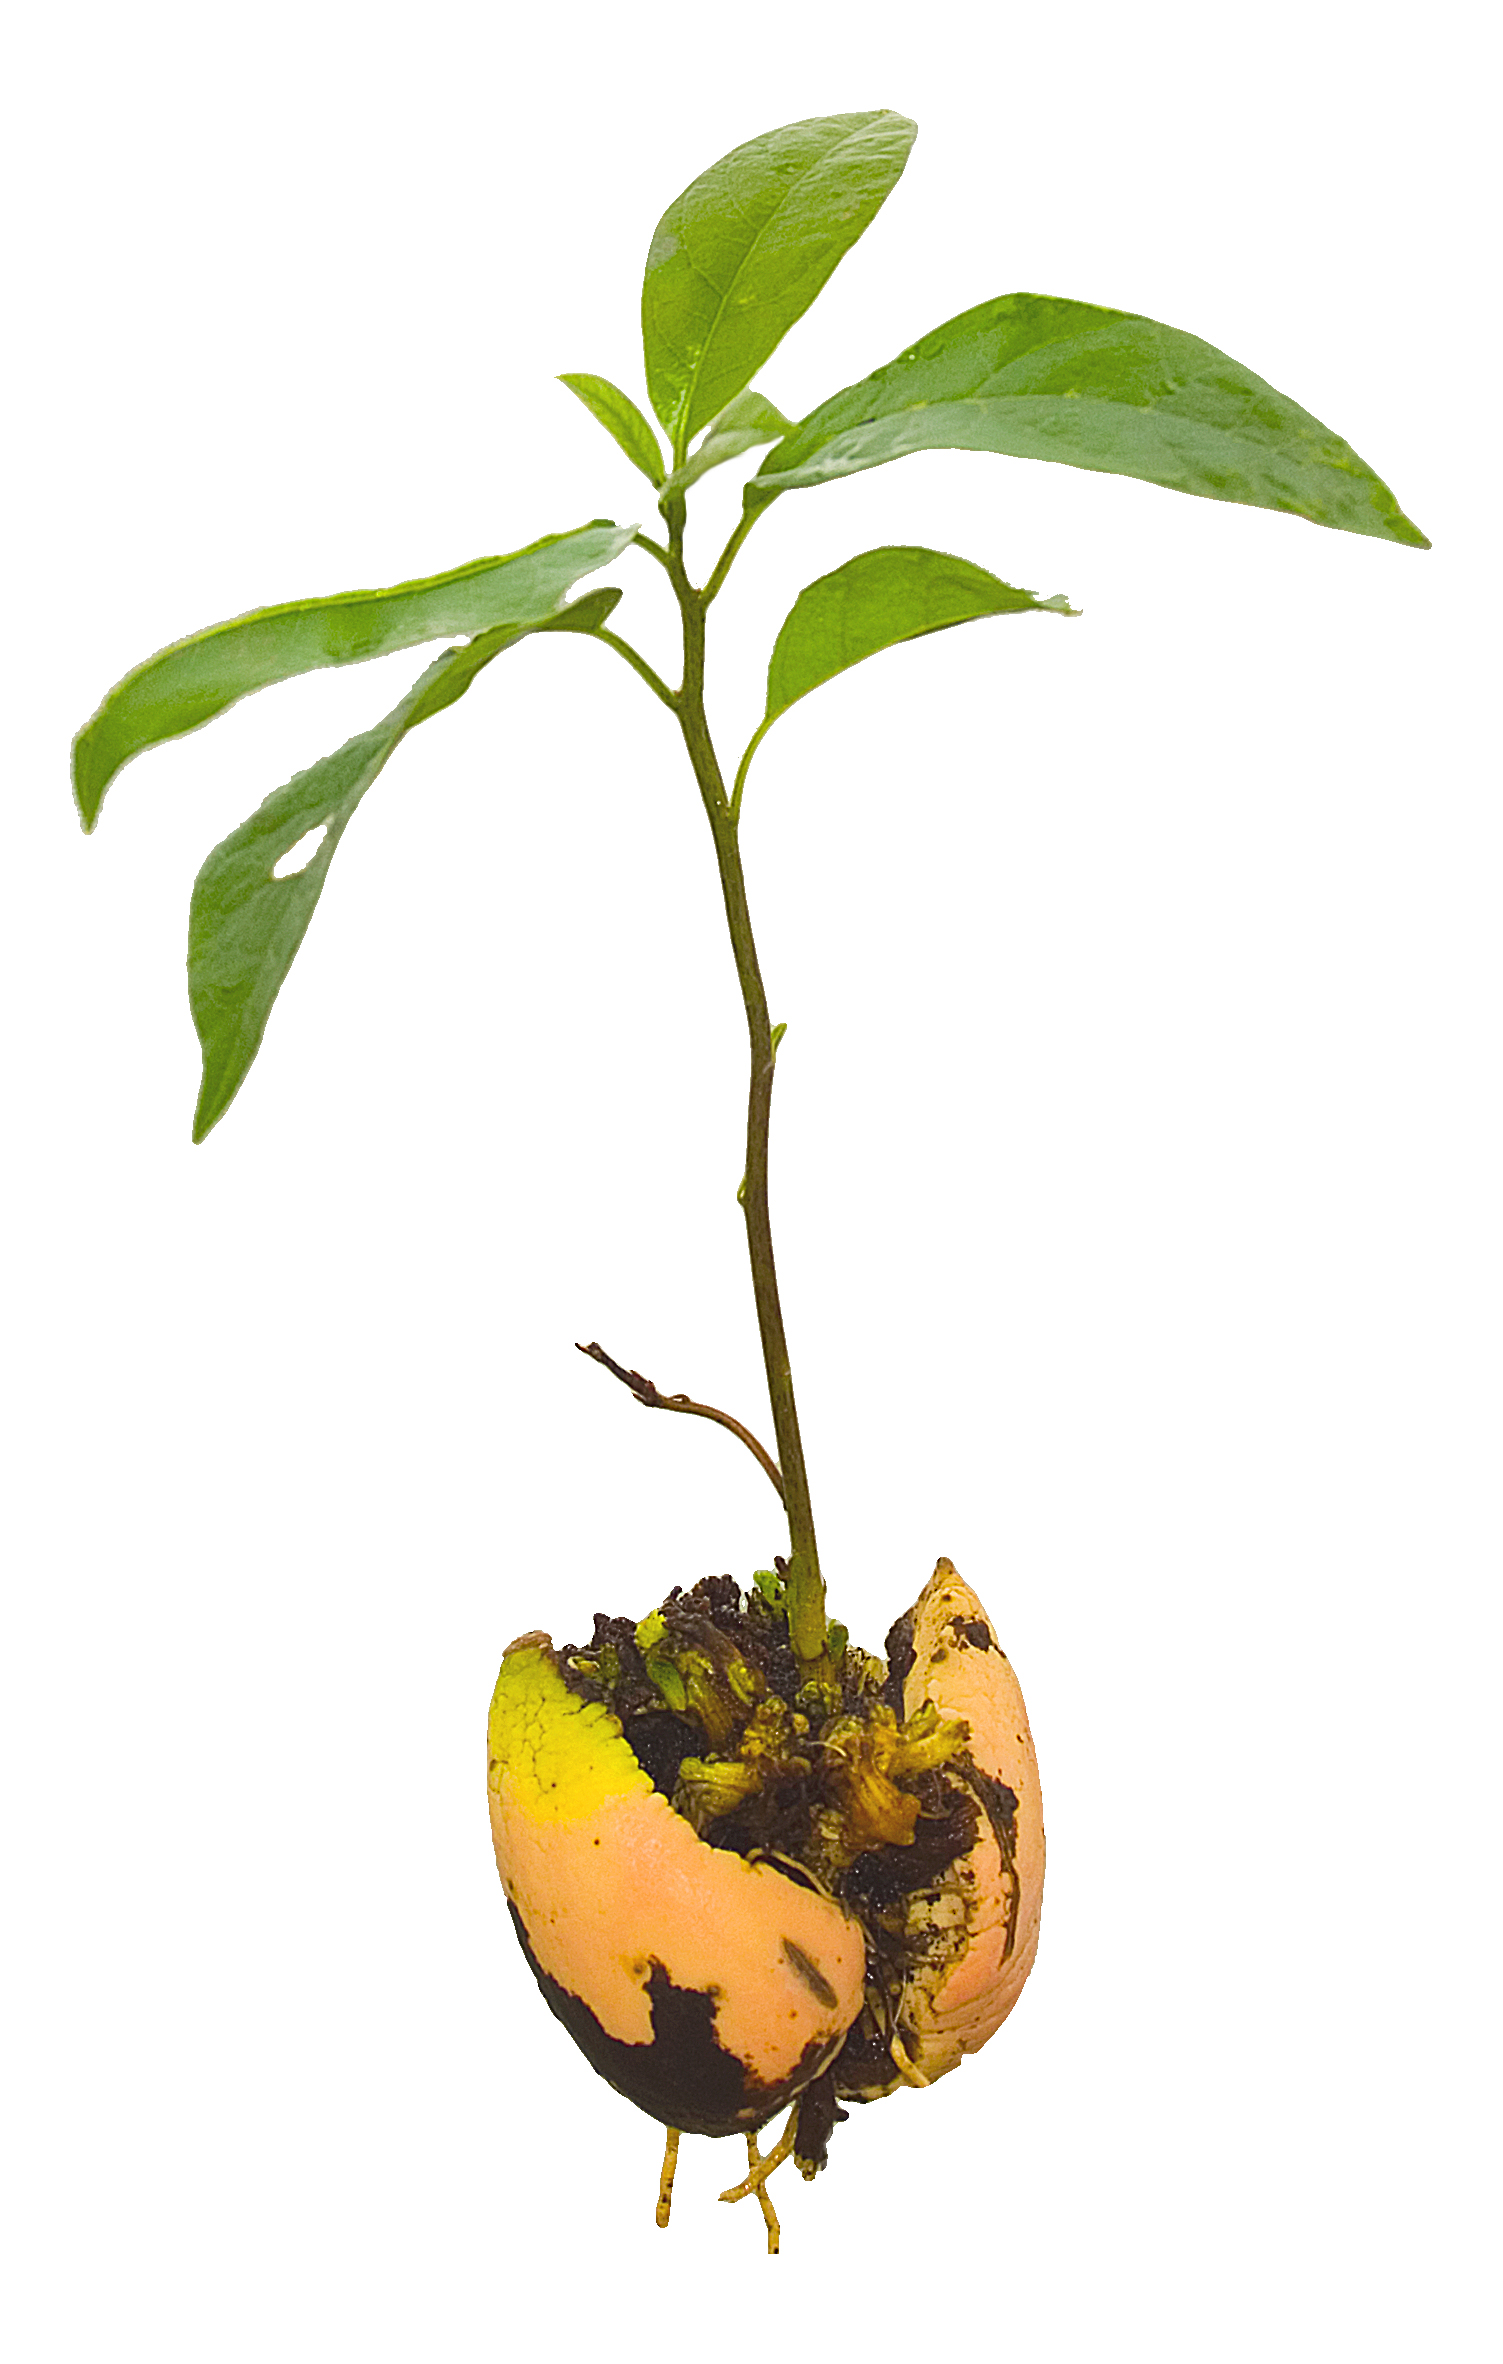 Put seed in dirt clipart png black and white stock Growing avocados from seeds without using tootphicks png black and white stock